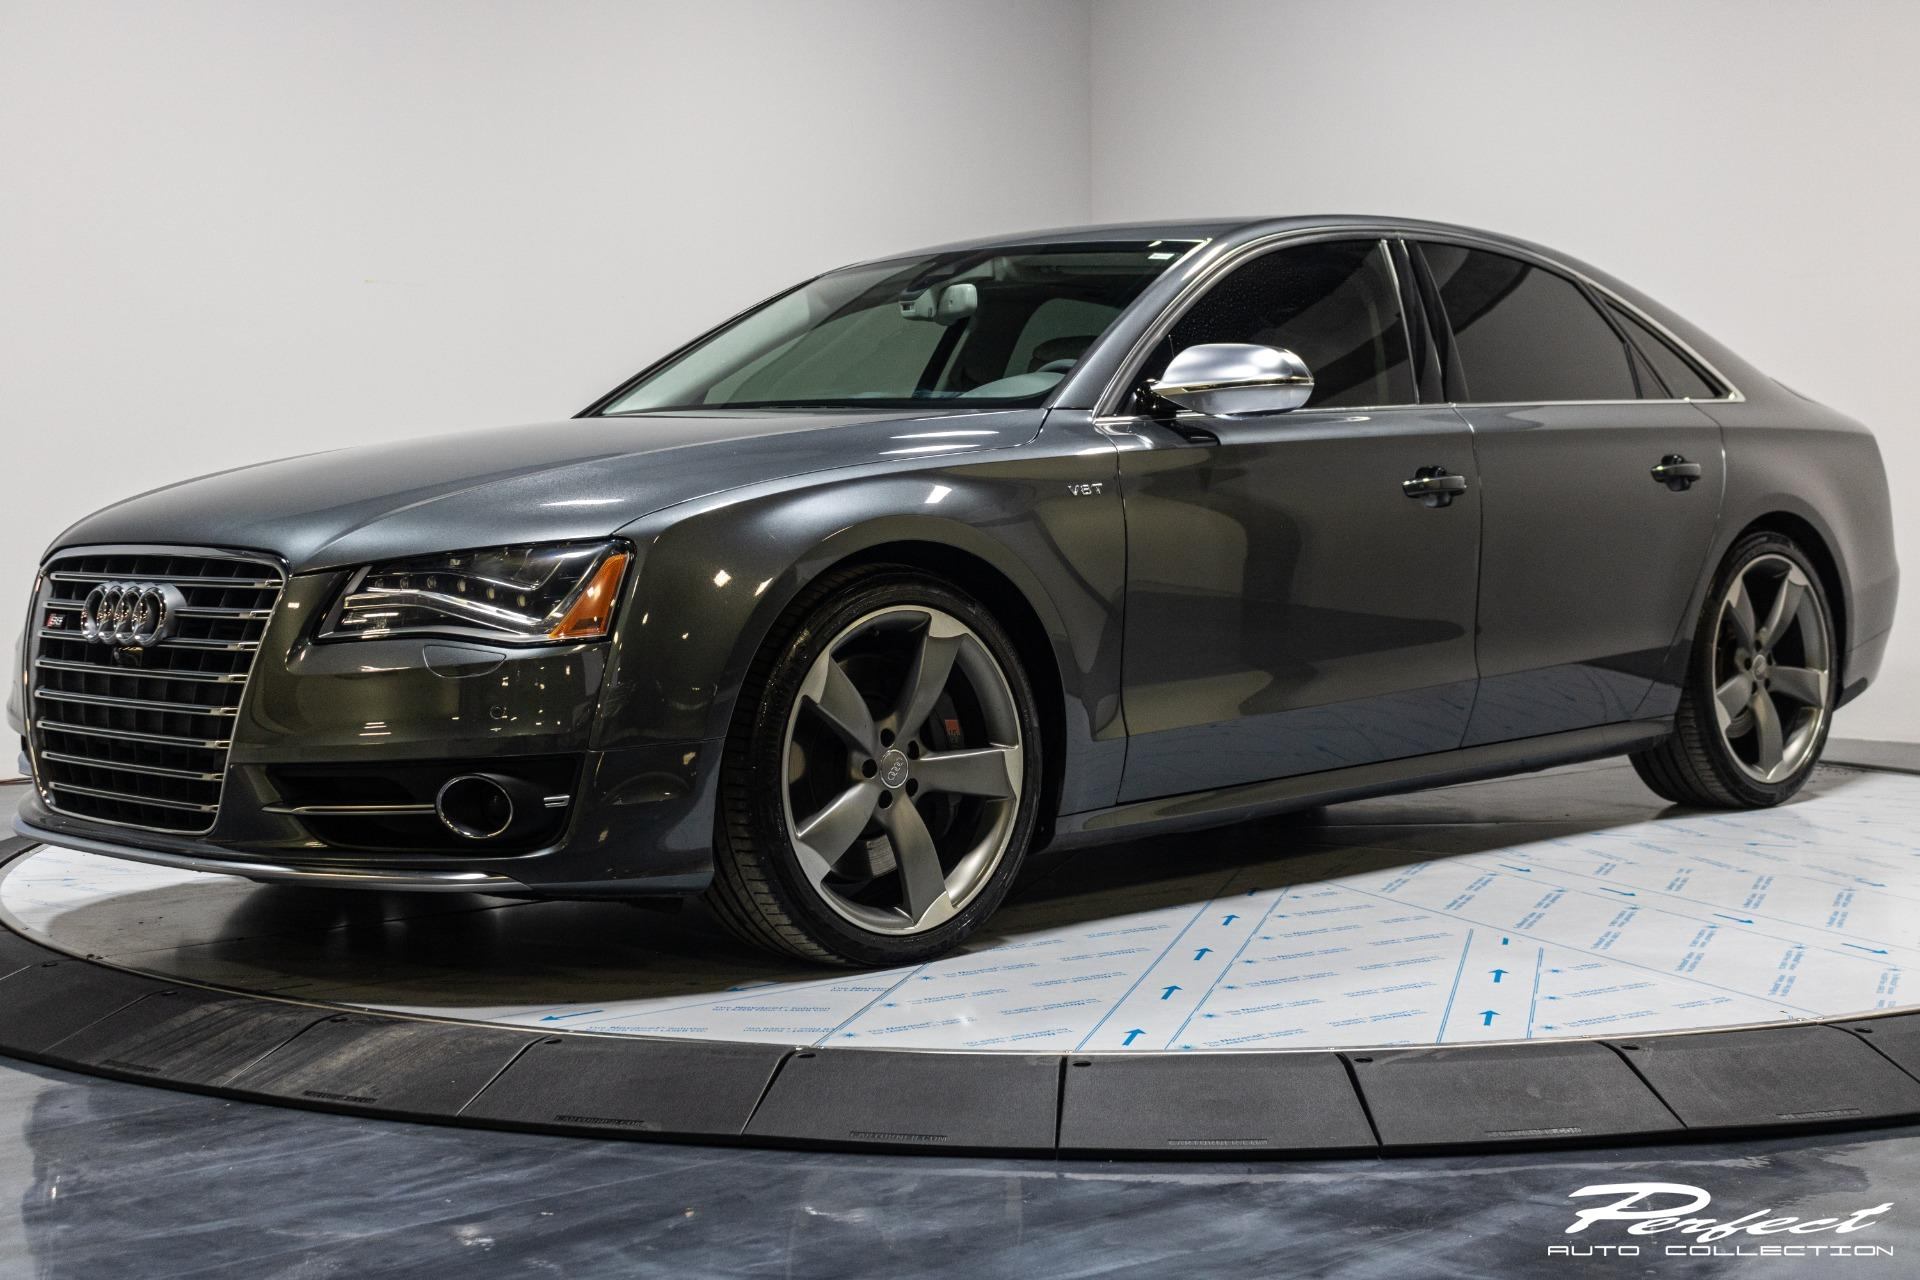 Used 2013 Audi S8 4.0T quattro for sale Sold at Perfect Auto Collection in Akron OH 44310 1